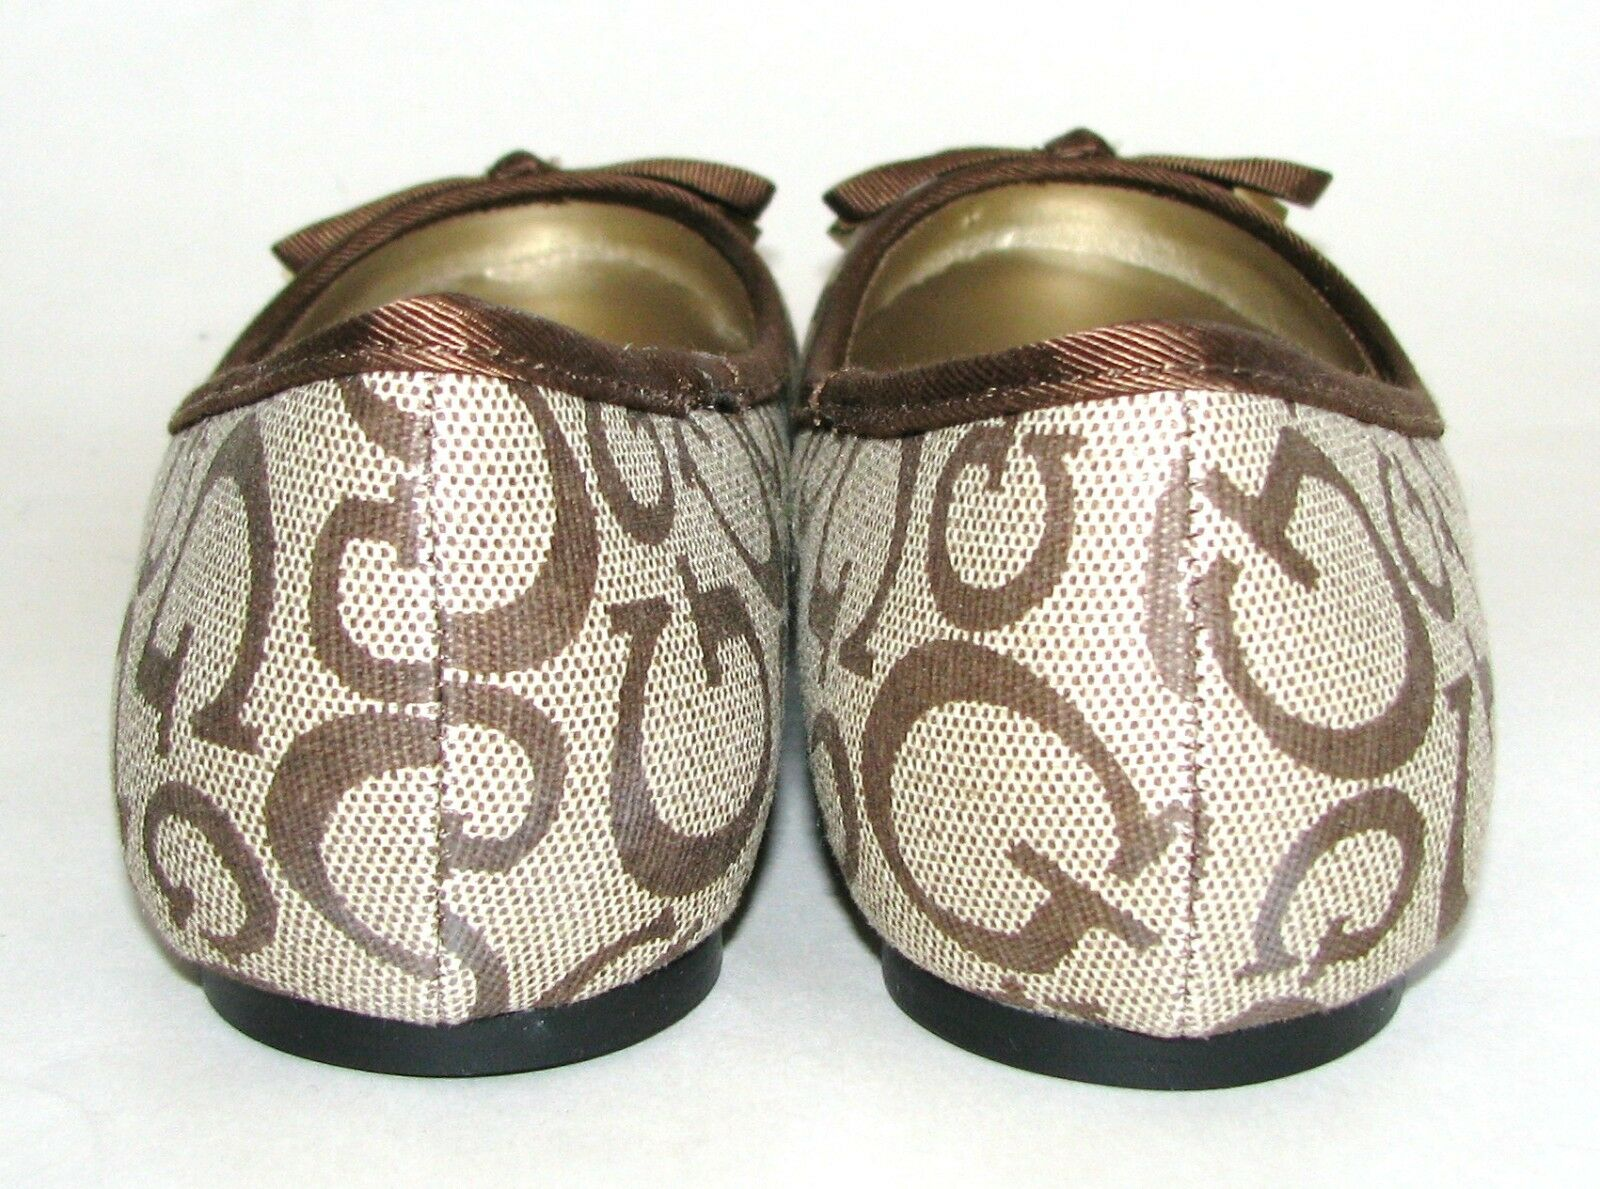 NEW-GUESS GEORGIA BROWN/PANNA JACQUARD